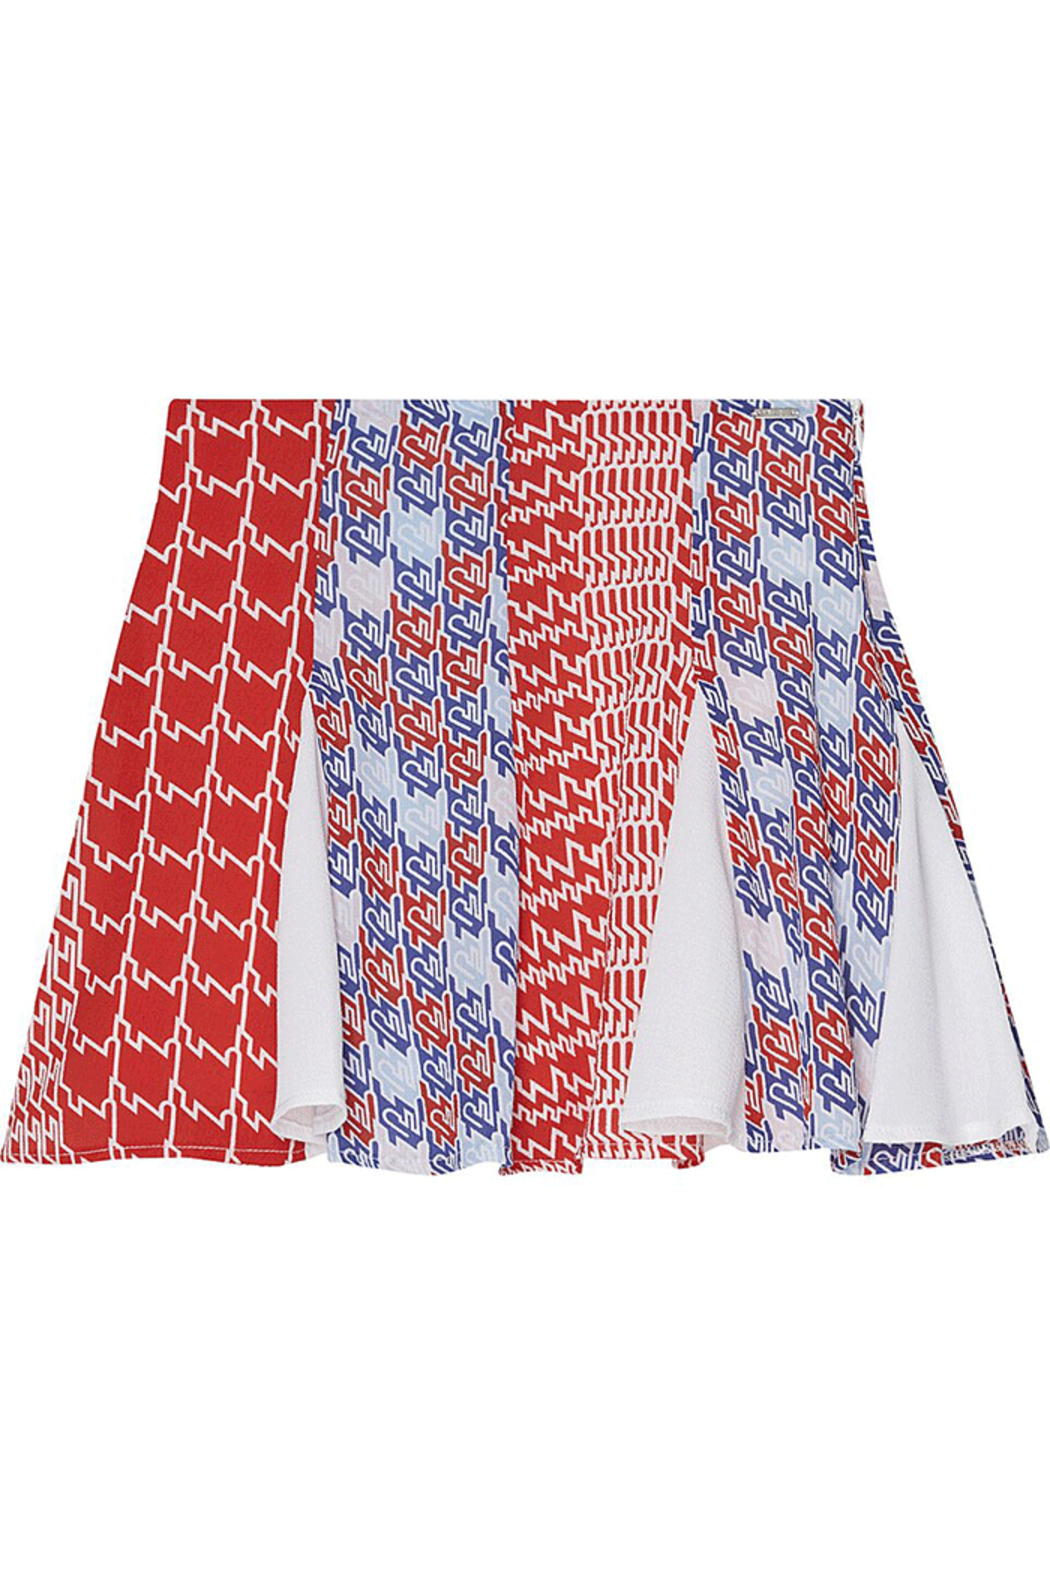 280b94c3cf Kenzo 8-12Y Printed Skirt from New York City by Mon Petit — Shoptiques